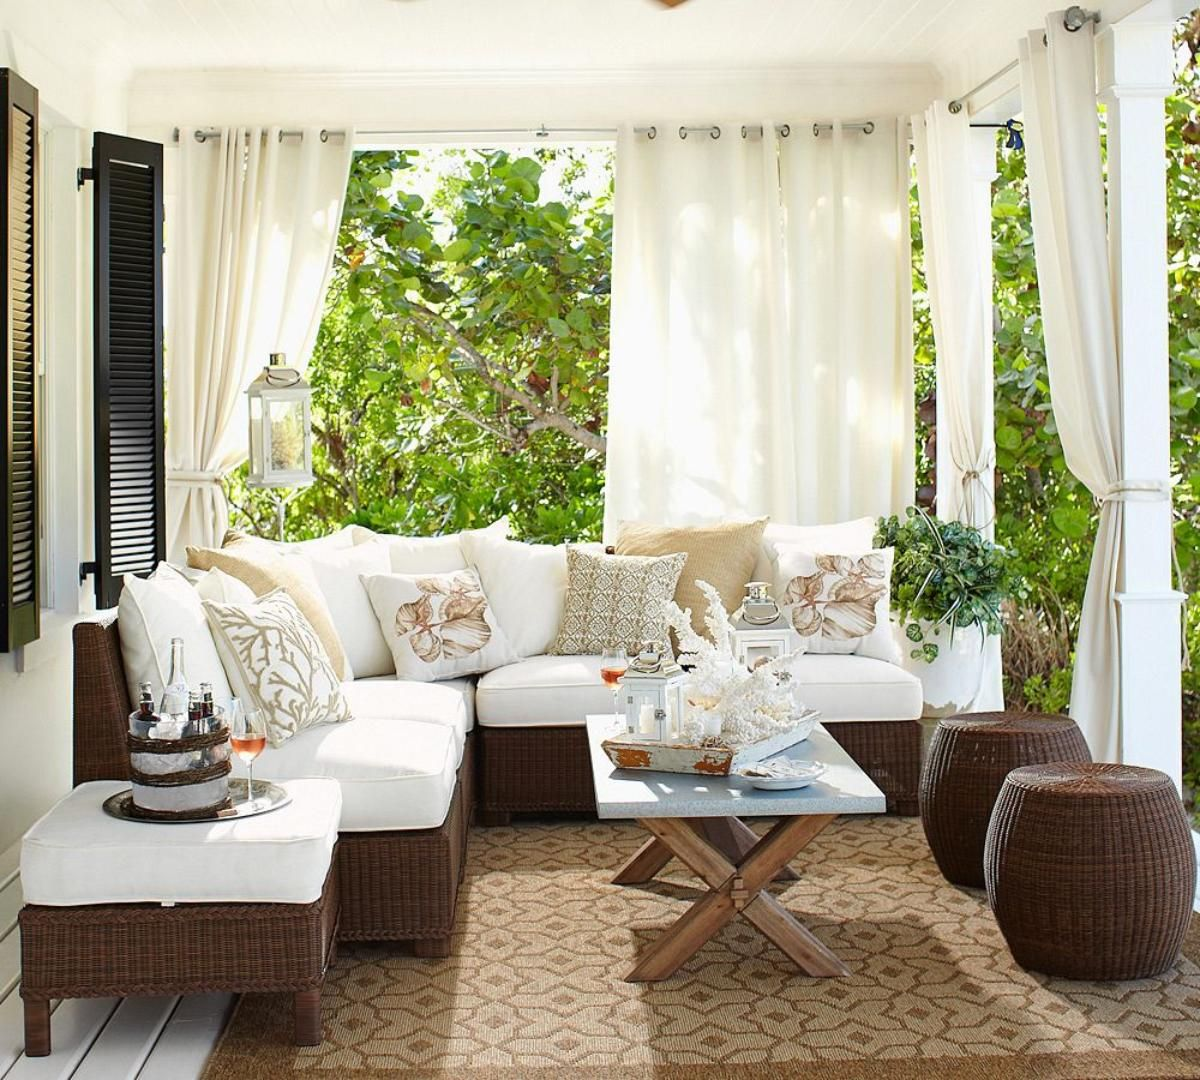 Palmetto All-Weather Wicker Sectional Set - Honey | Pottery Barn AU ...